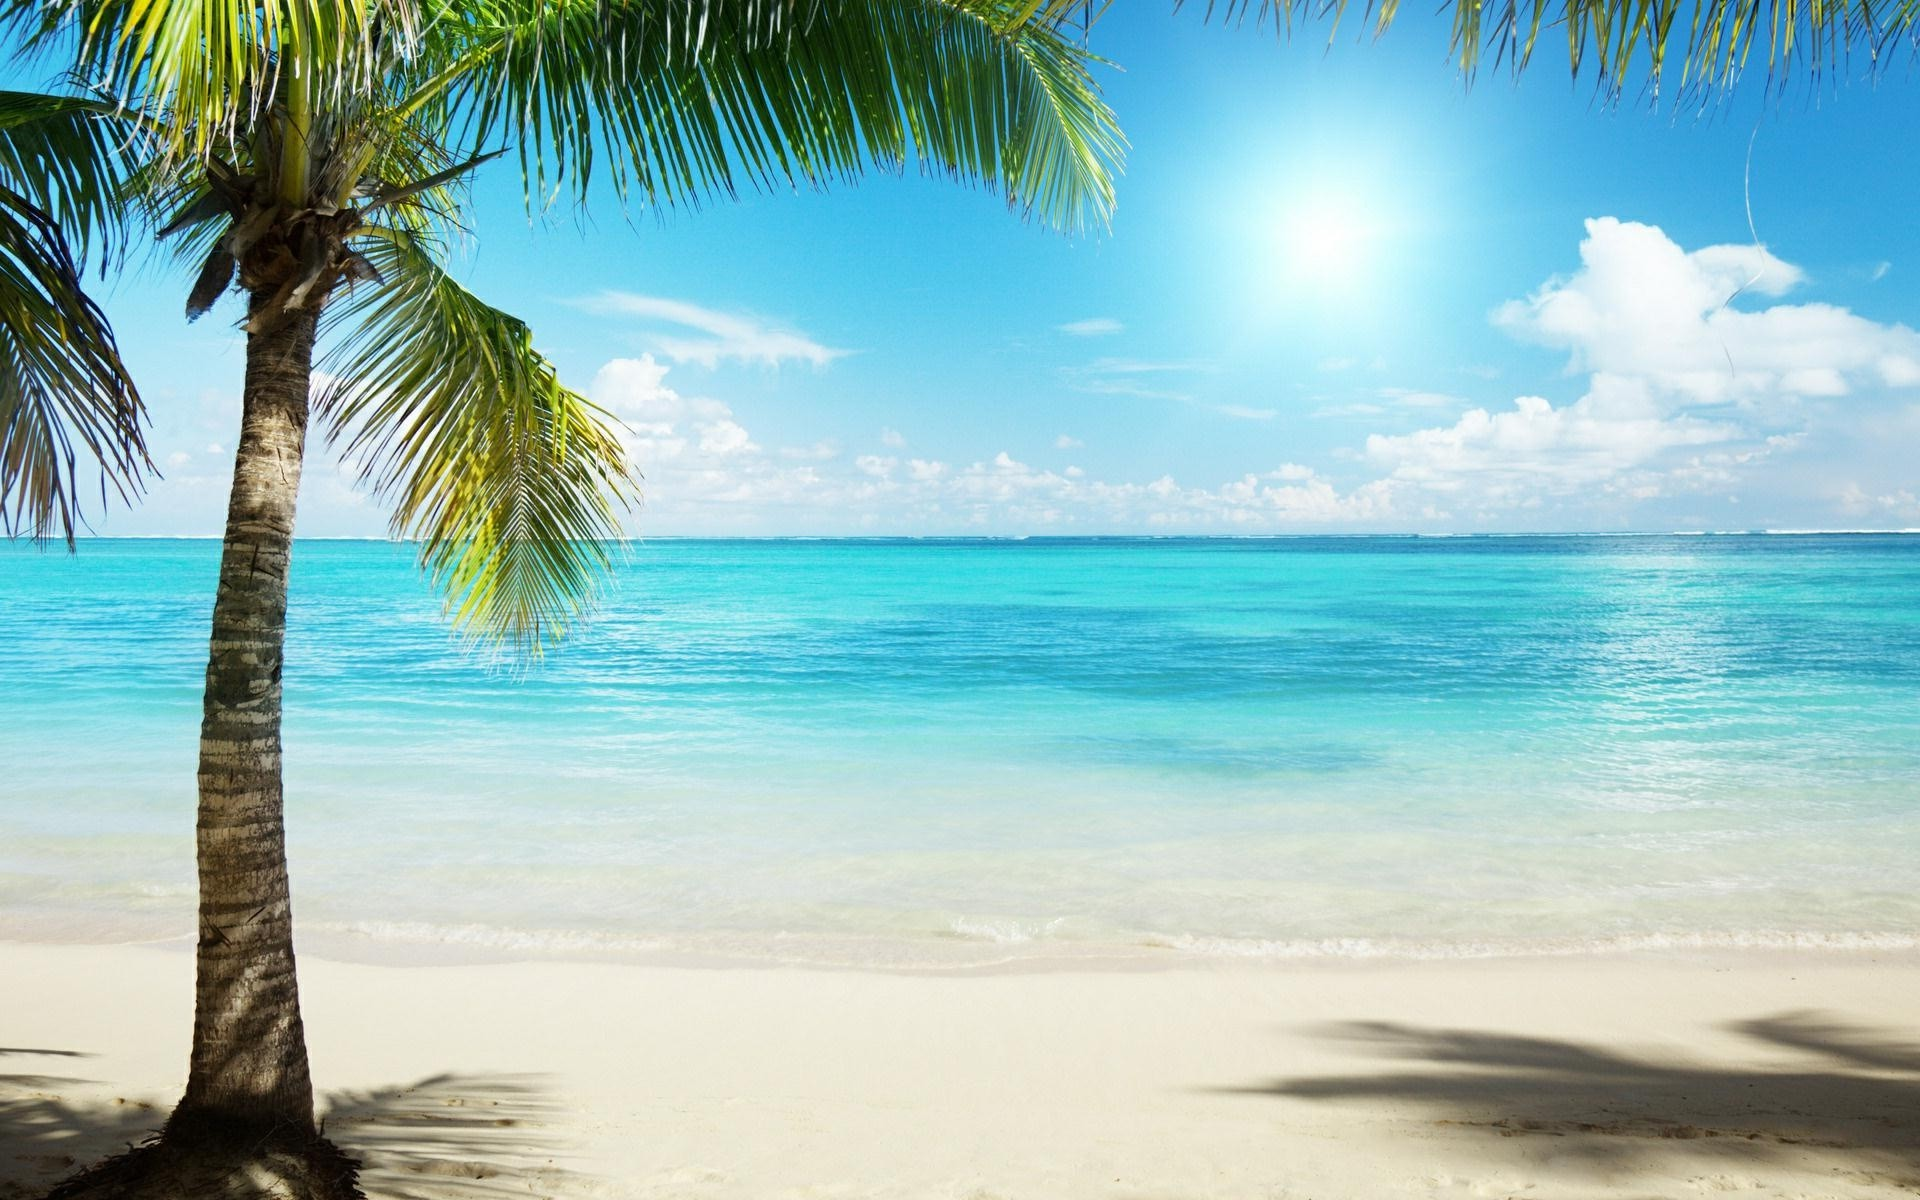 Hd Tropical Island Beach Paradise Wallpapers And Backgrounds: Tropical Beach HD Desktop Wallpaper